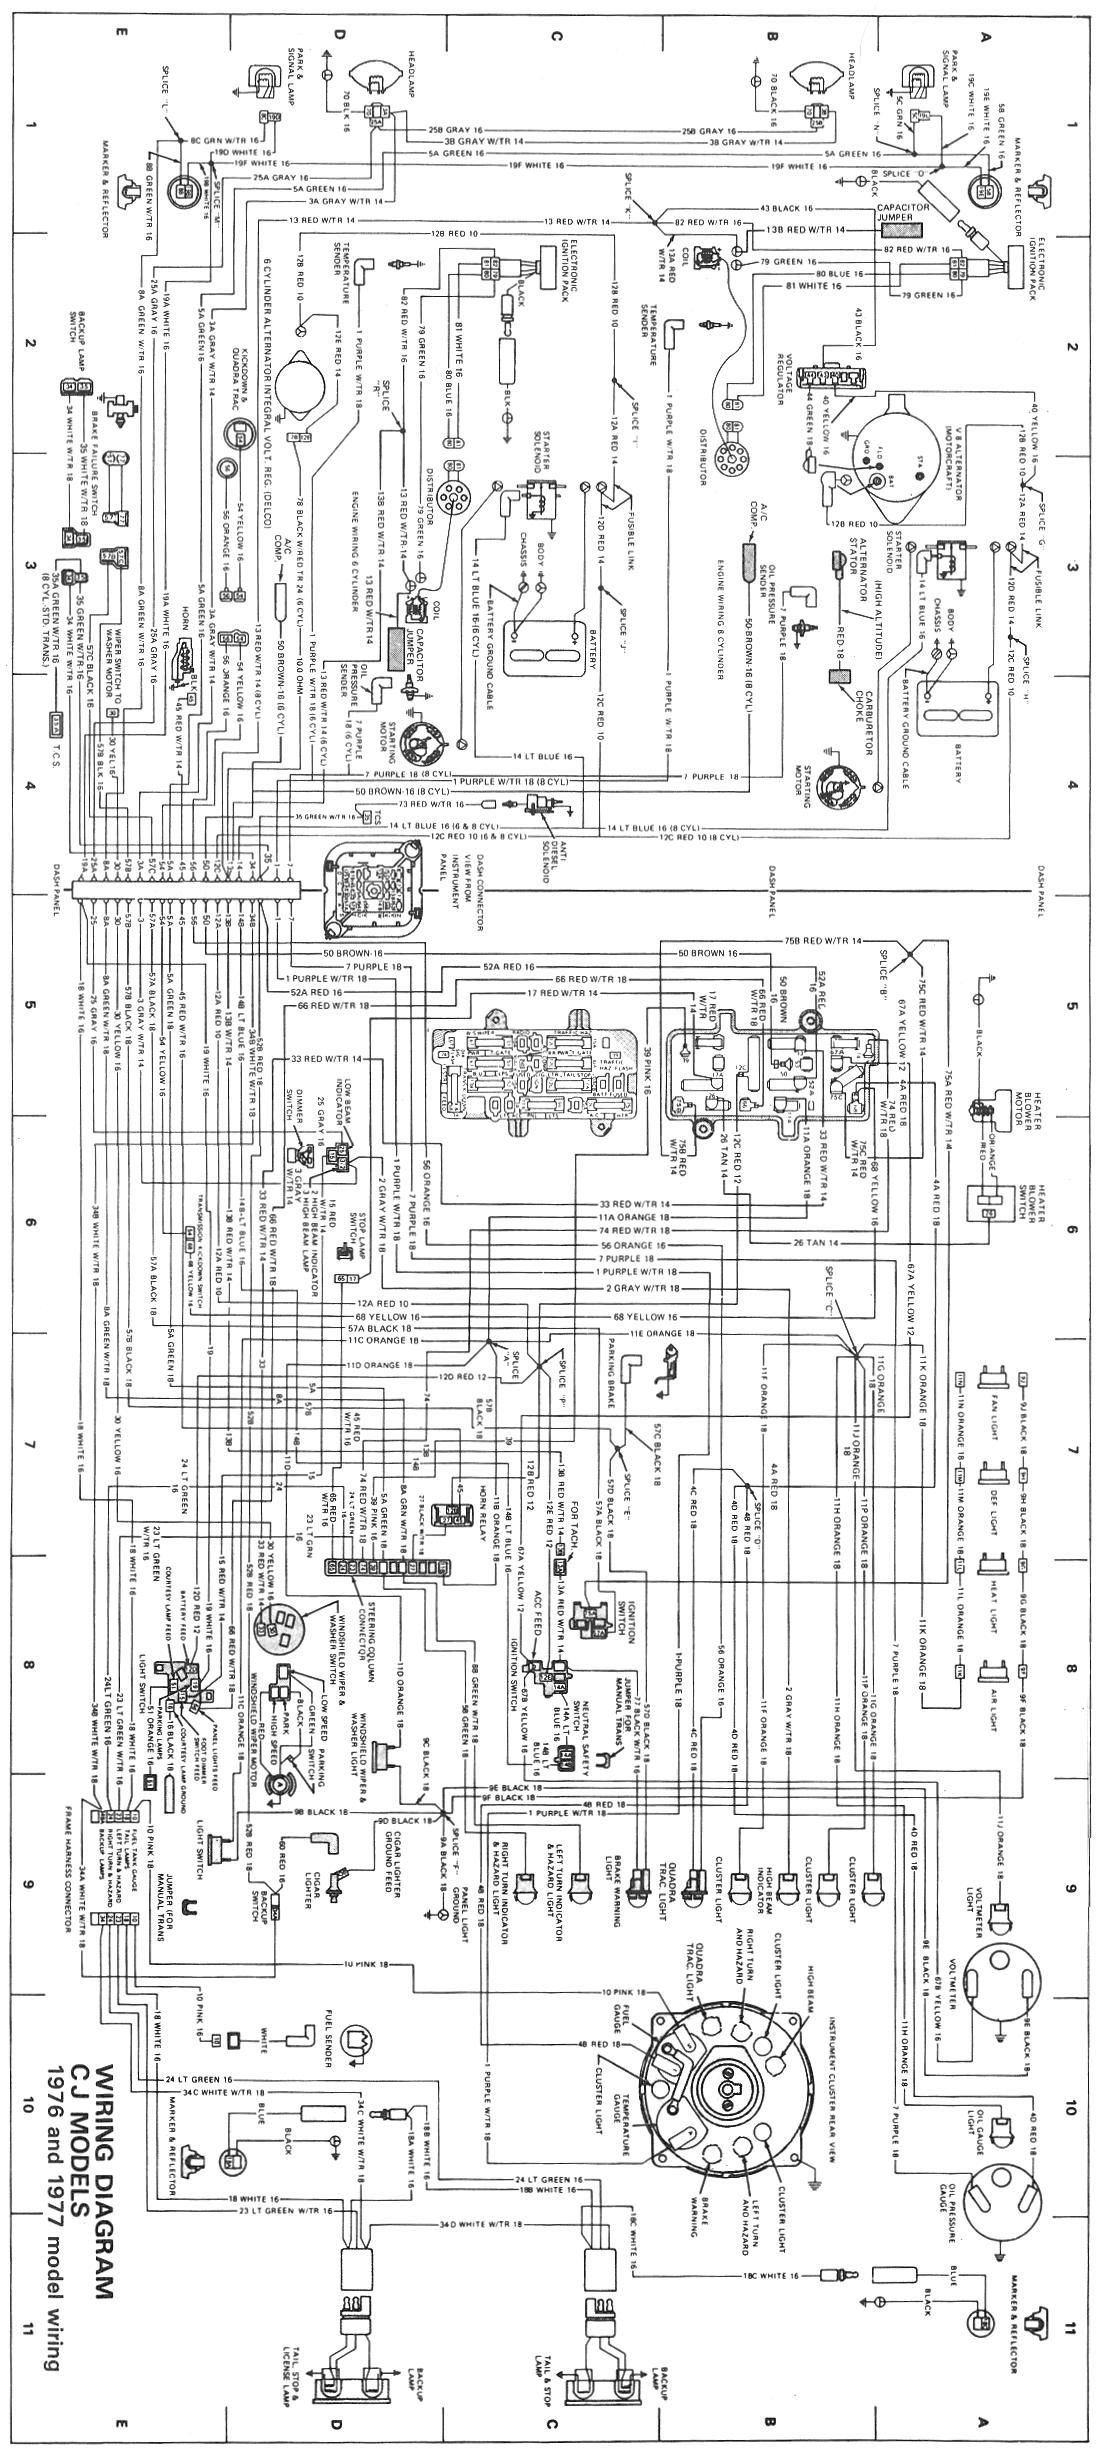 1968 jeep wiring diagram schematic wiring diagram 1968 Chevy Wiring Diagram